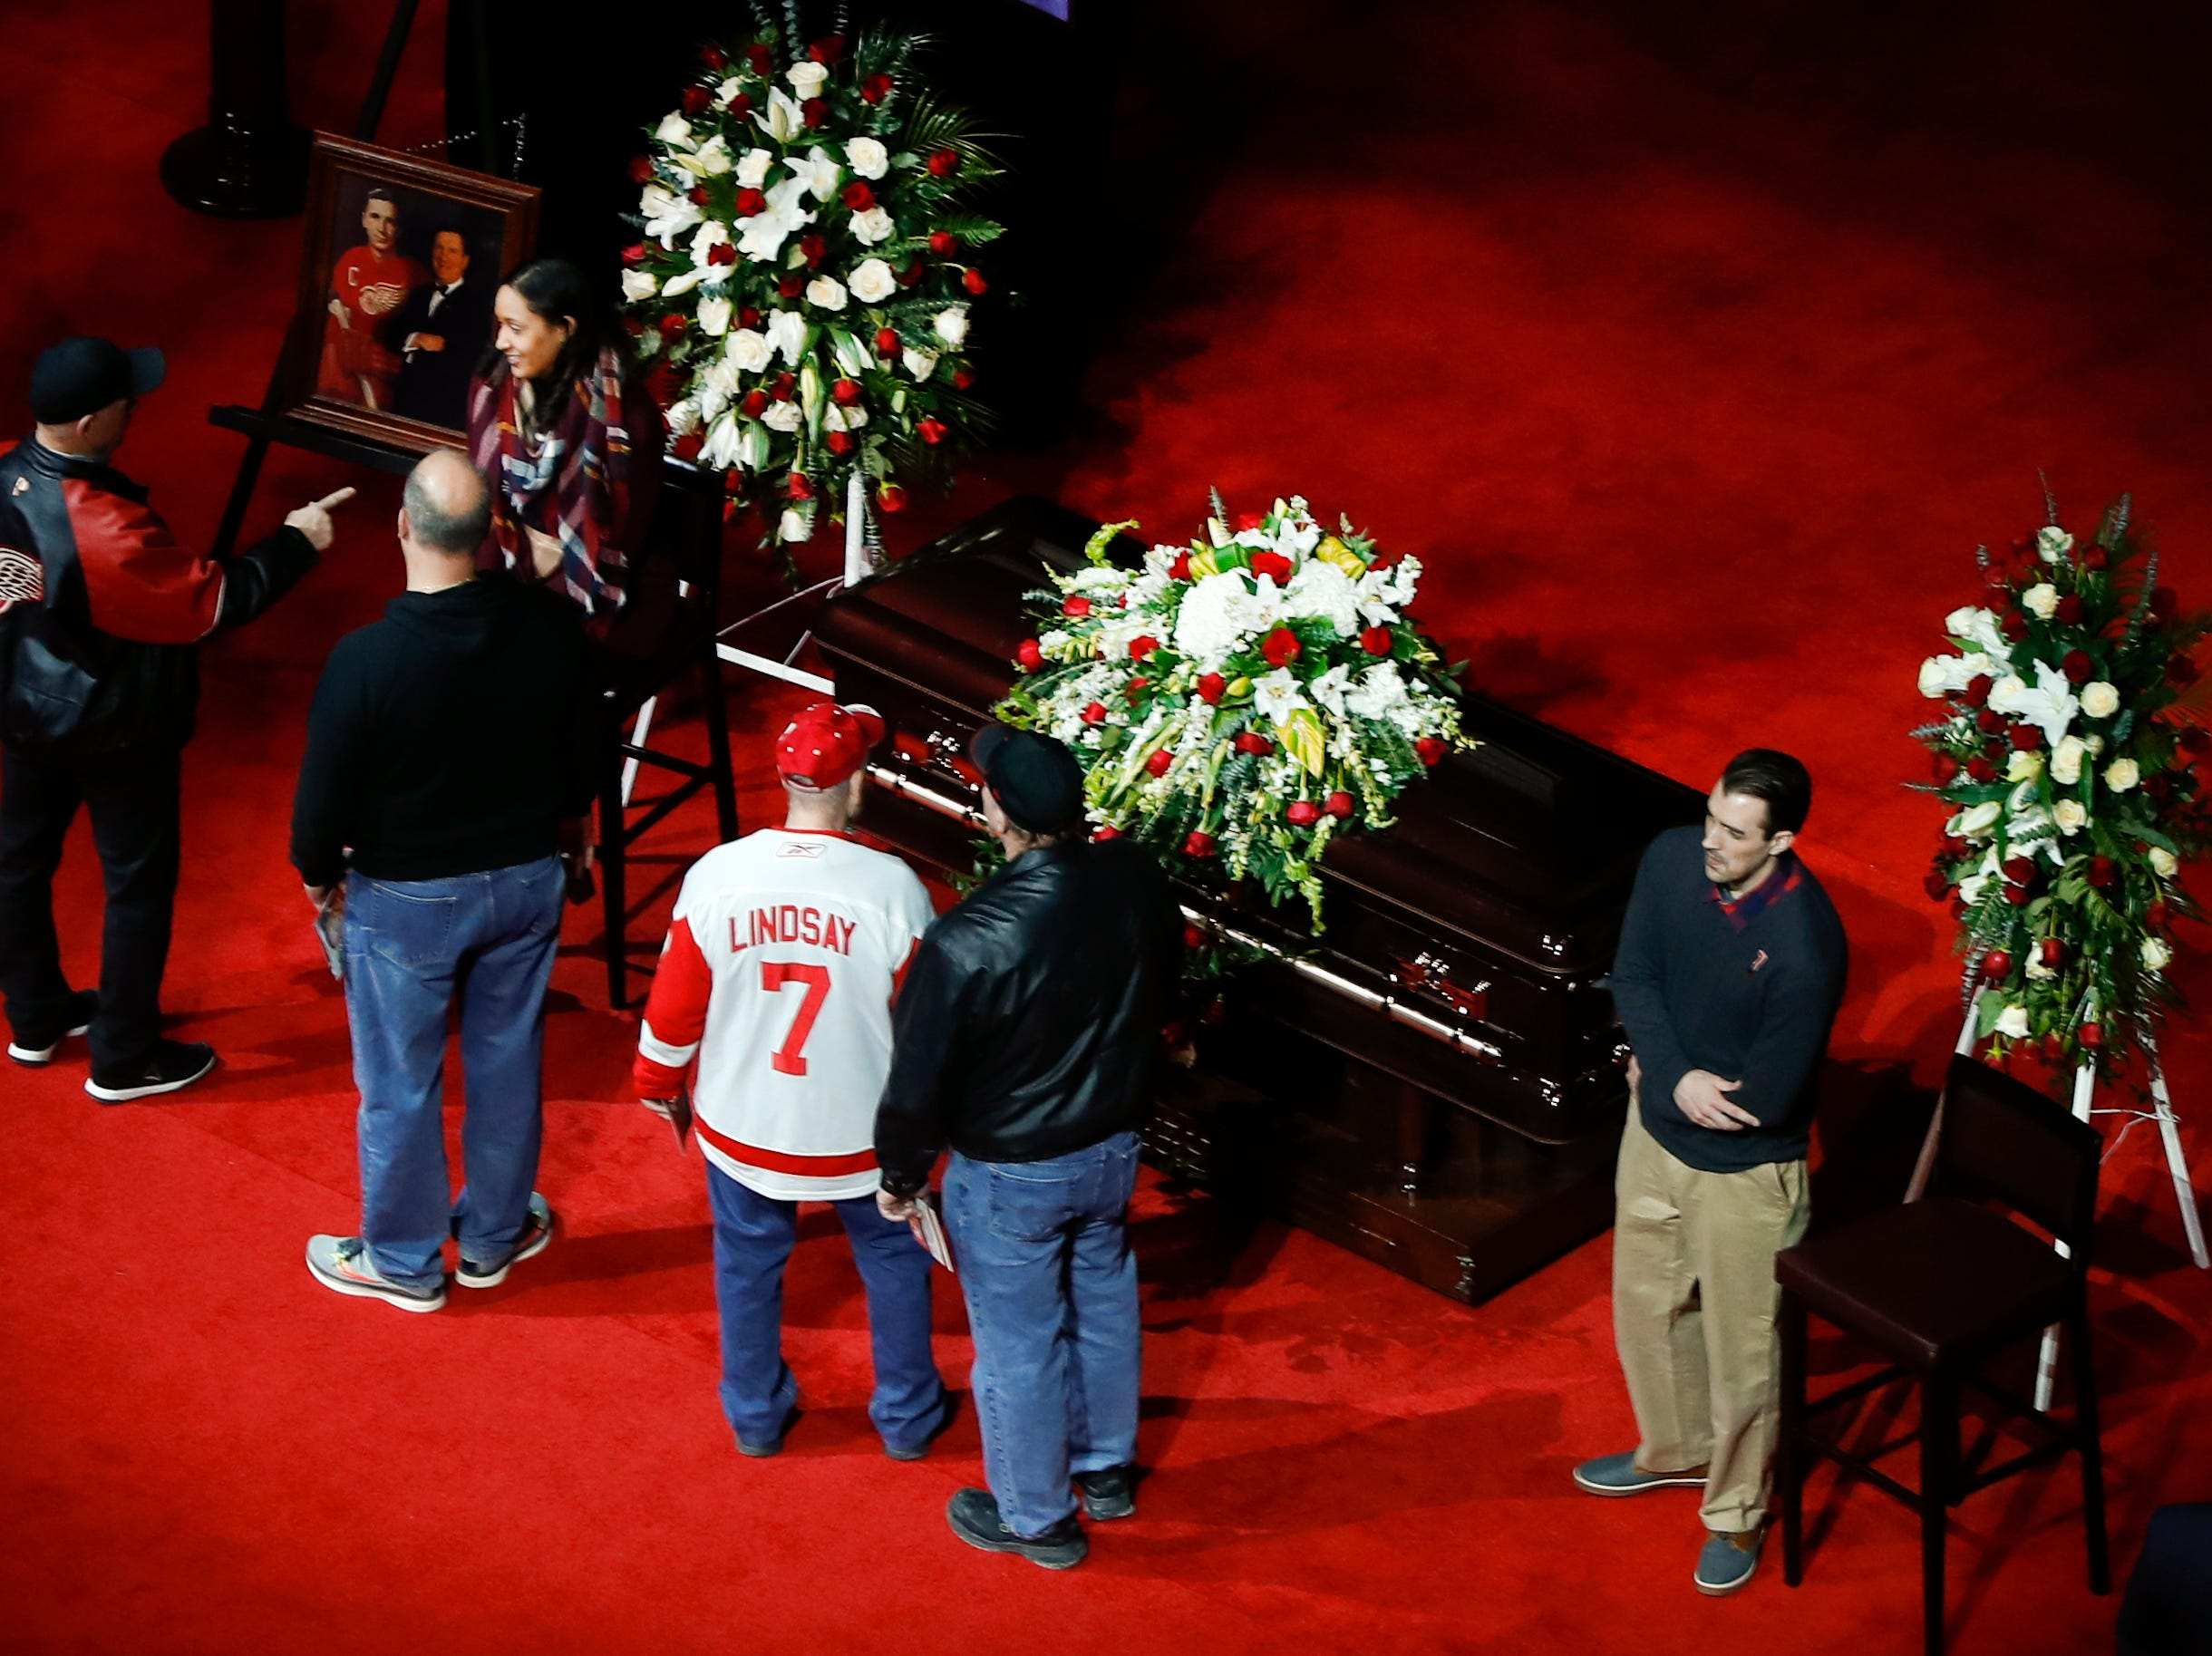 Mourners pay their respect at the casket of former Detroit Red Wings player Ted Lindsay.